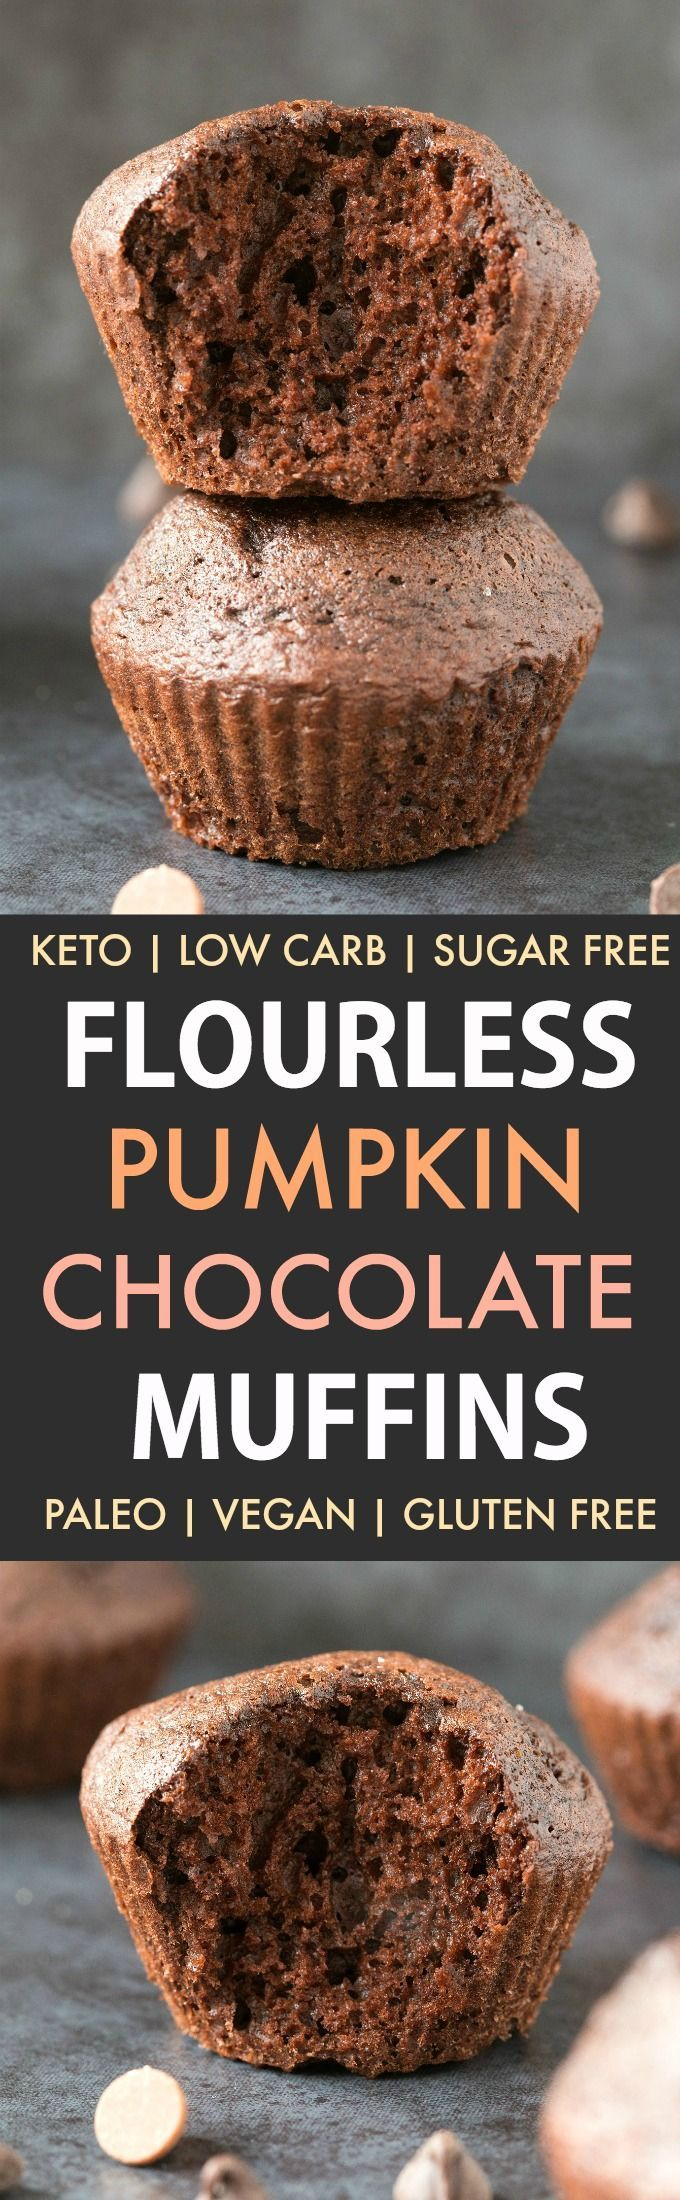 Flourless Pumpkin Chocolate Muffins (Paleo, Vegan, Keto, Sugar Free)- An easy one-bowl recipe for flourless chocolate muffins with pumpkin- Made with no flour, no oil and no butter, moist and gooey on the inside and tender on the outside! Freezer-friendly too! | Recipe on